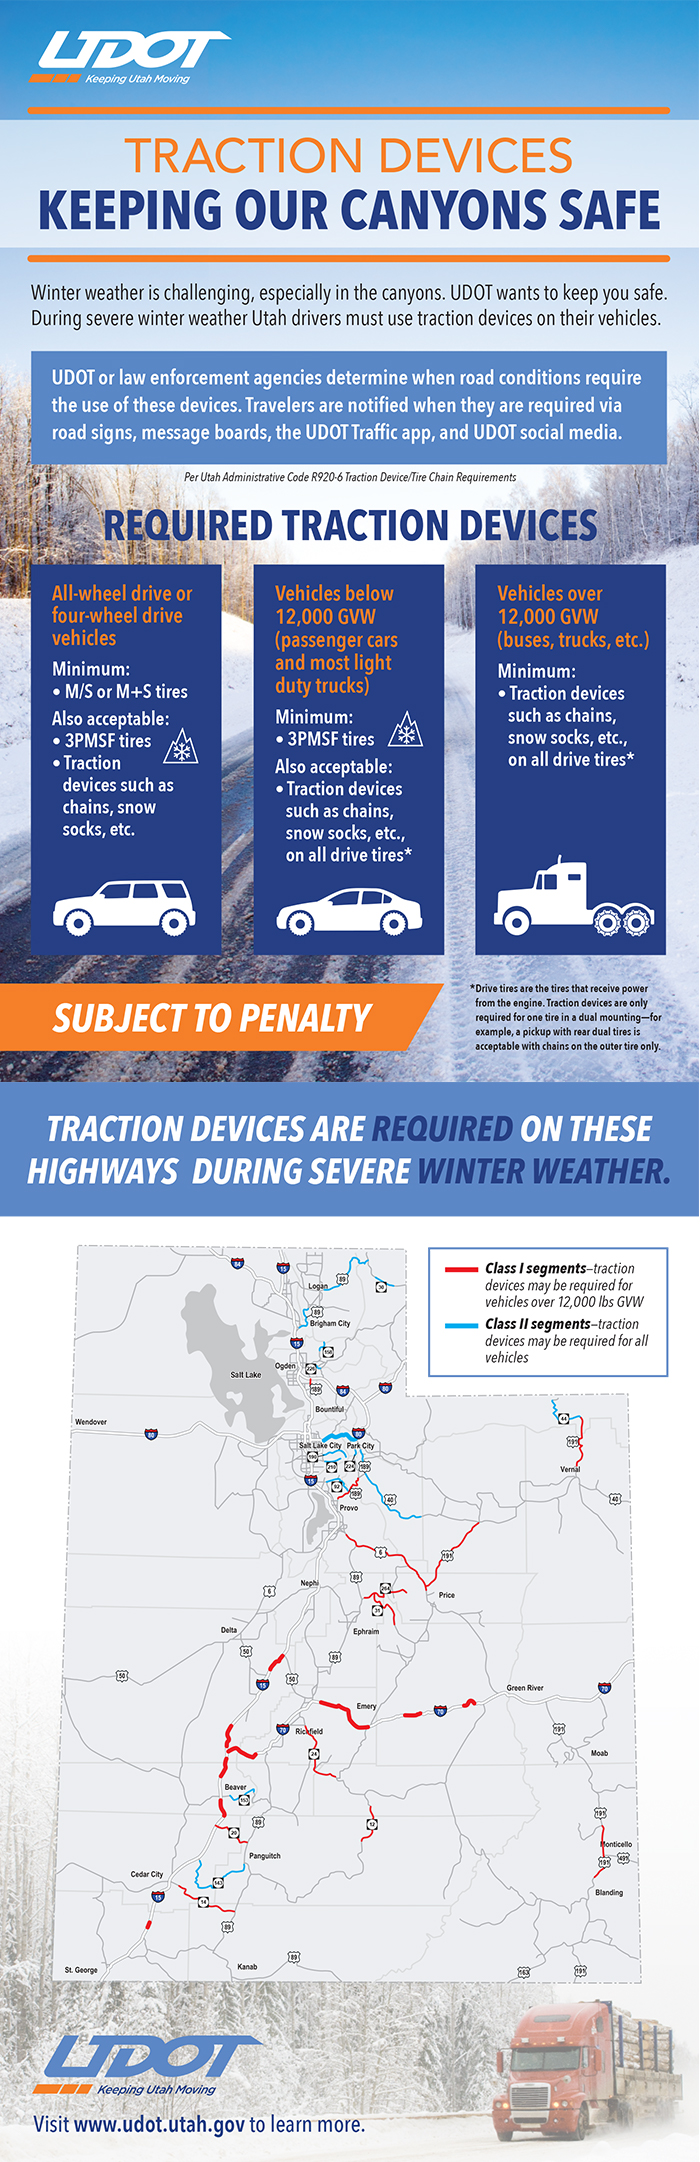 Required Traction Devices All-wheel drive or four-wheel drive: M/S or M+S tries, 3PMSF tires or traction devices. Vehicles below 12,000 GVW: 3PMSF tires or traction devices. Vehicles over 12,000 GVW: traction devices.